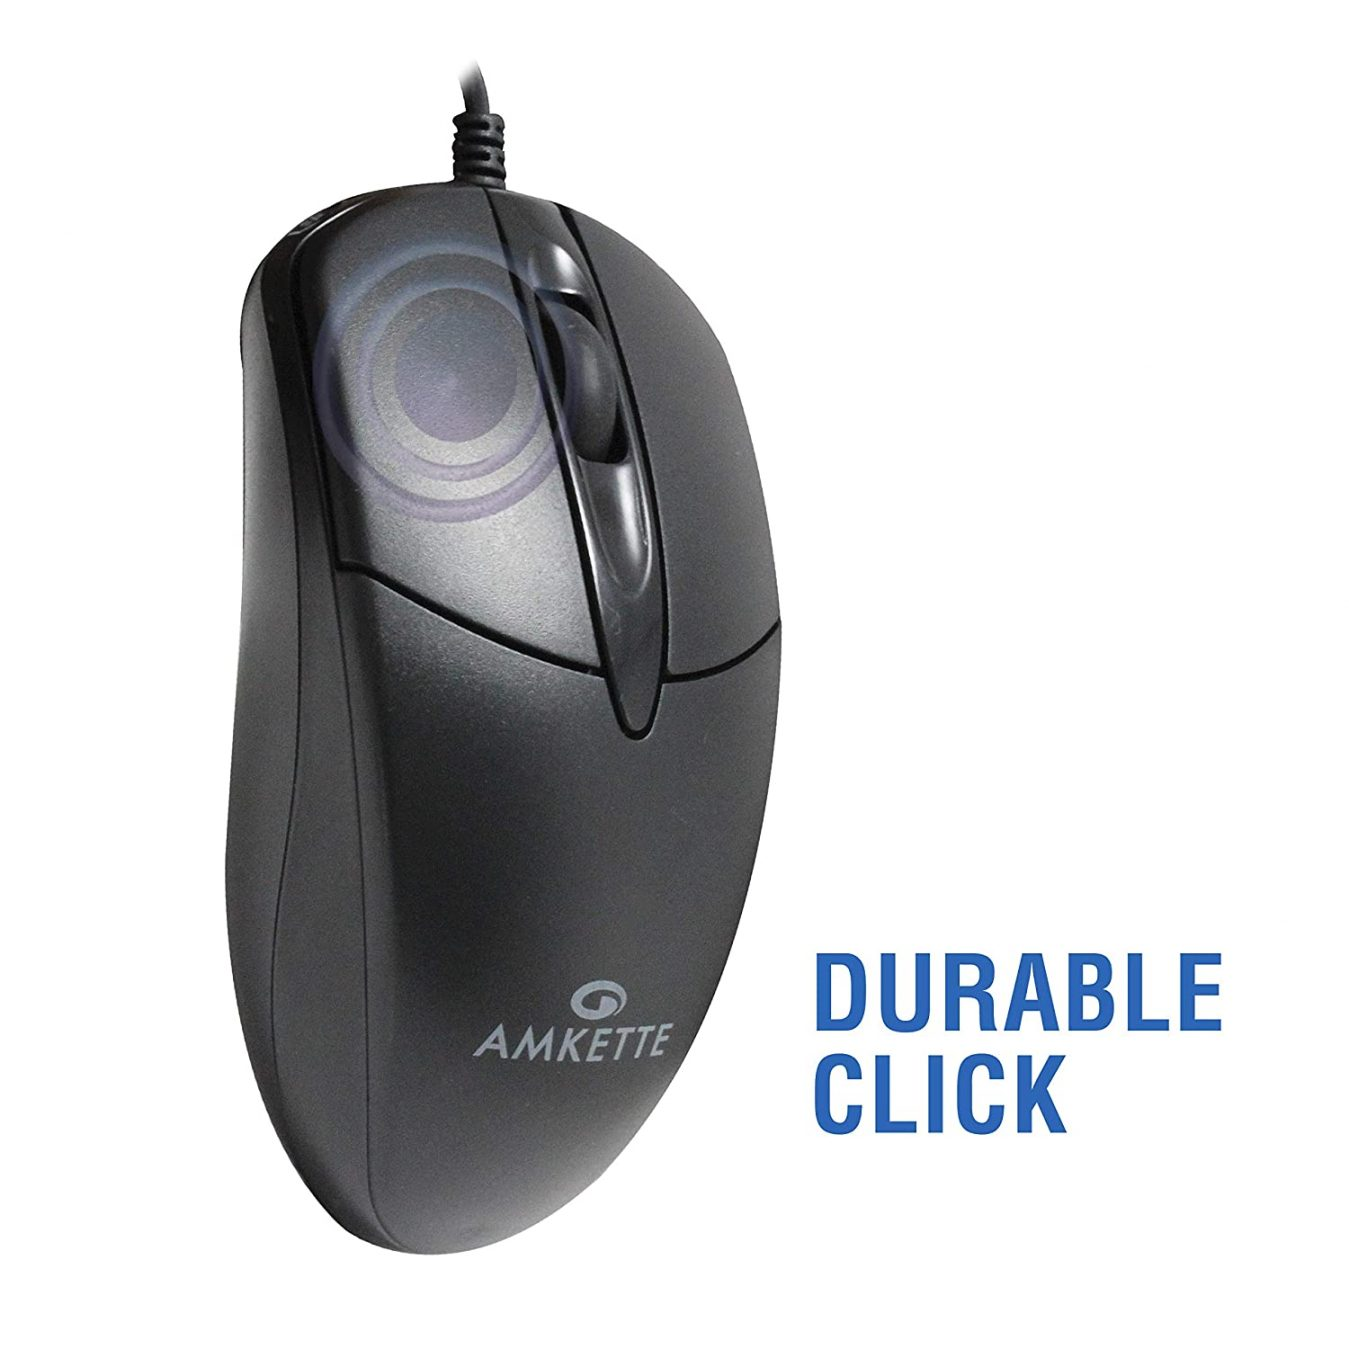 Durable Click kettebest quality by am